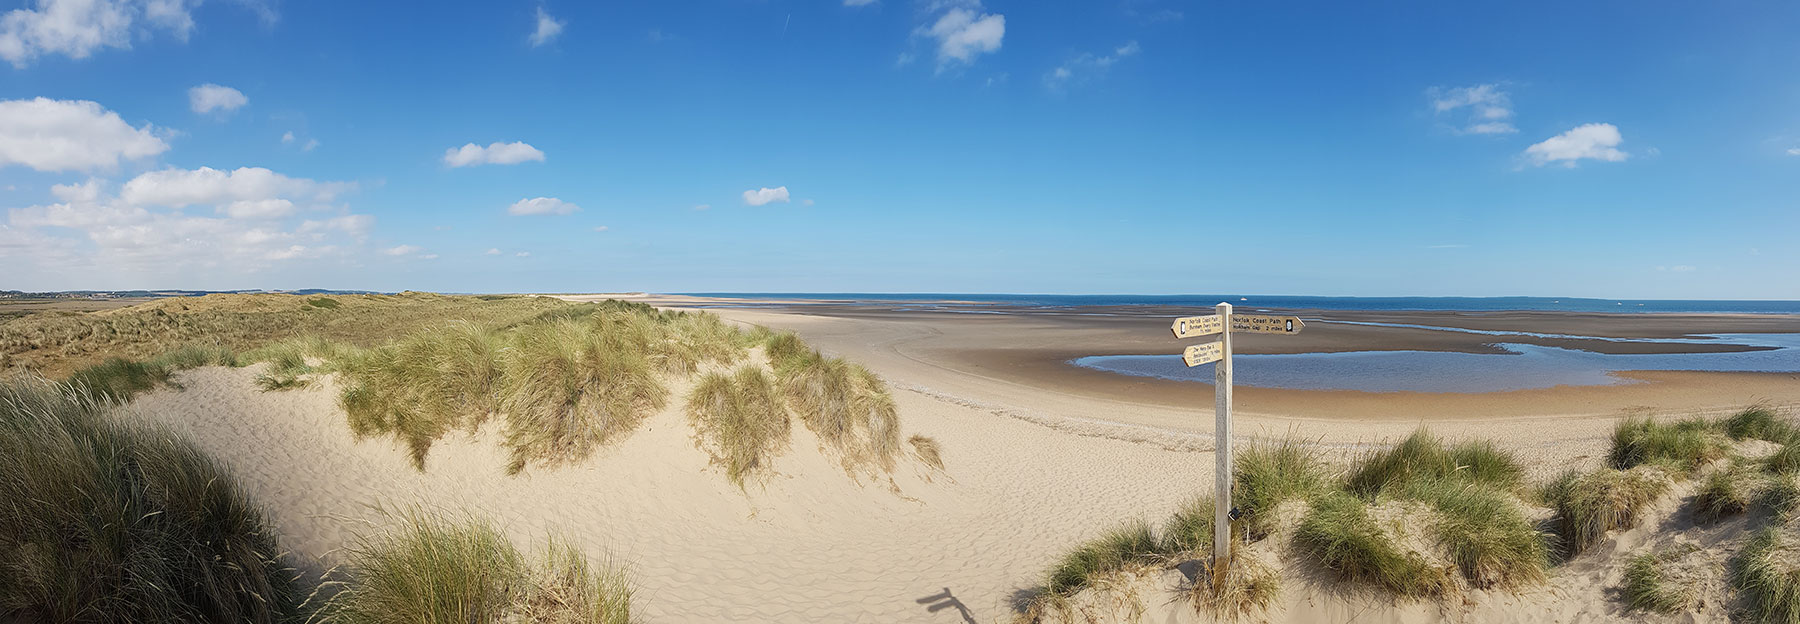 Norfolk beach and sand dunes